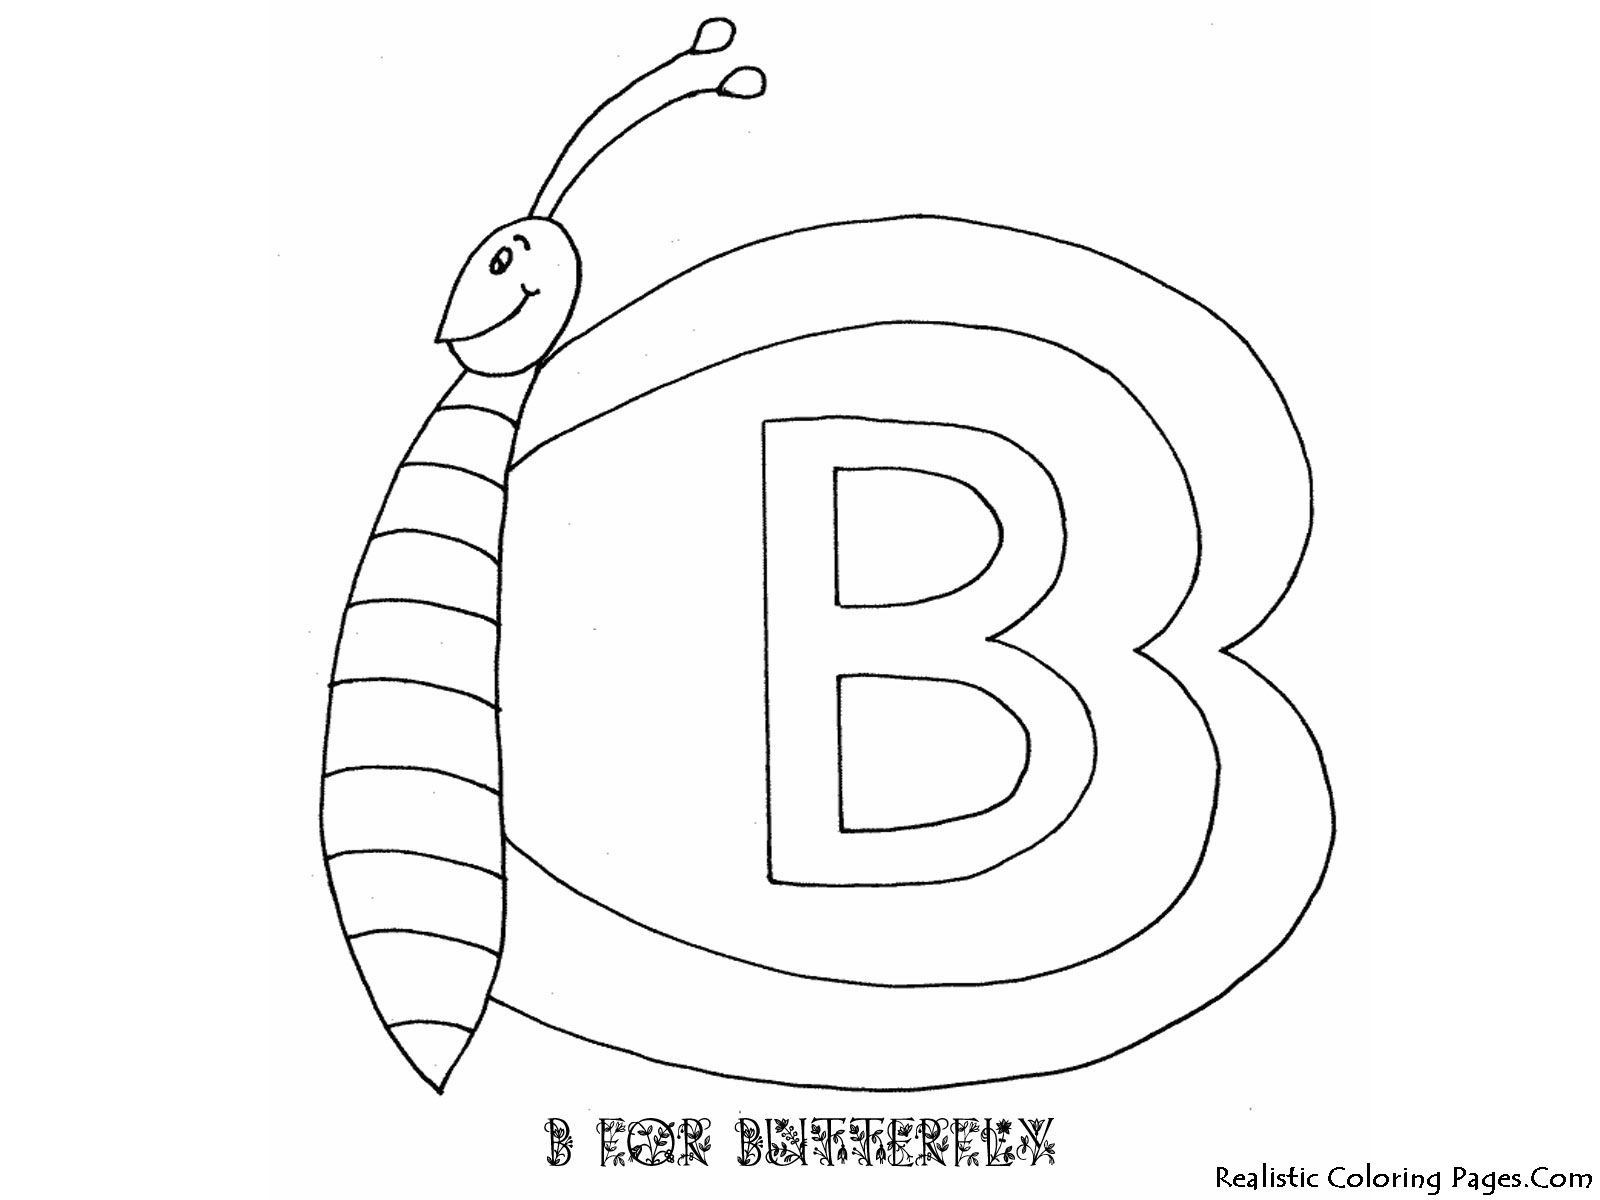 Alphabet Coloring Pages B For Butterfly